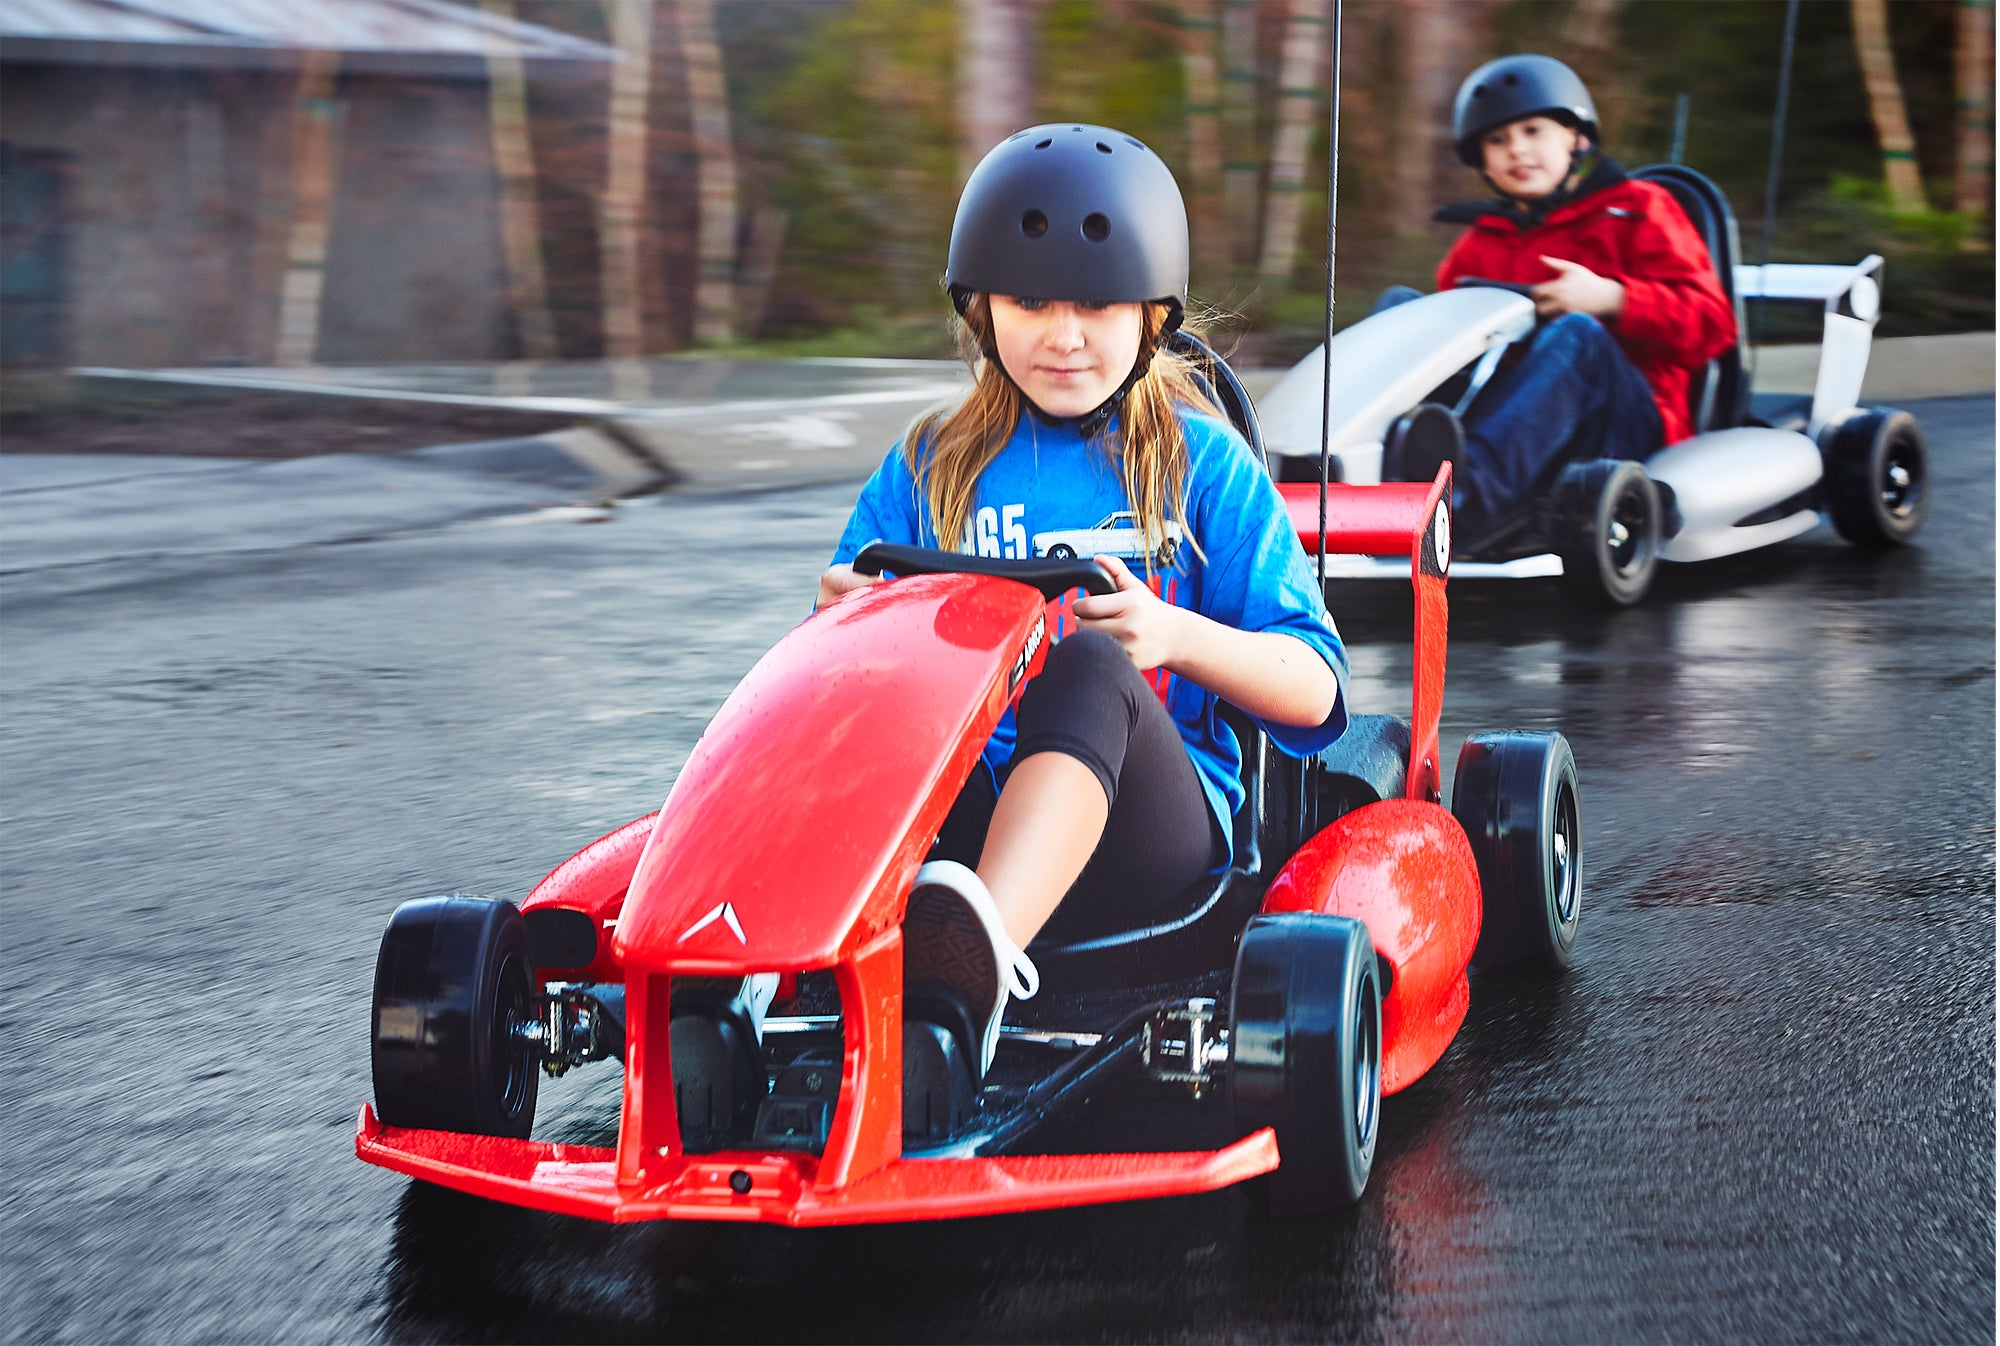 The Arrow Smart Electric Go-Kart Is a Tesla For Nine-Year-Olds